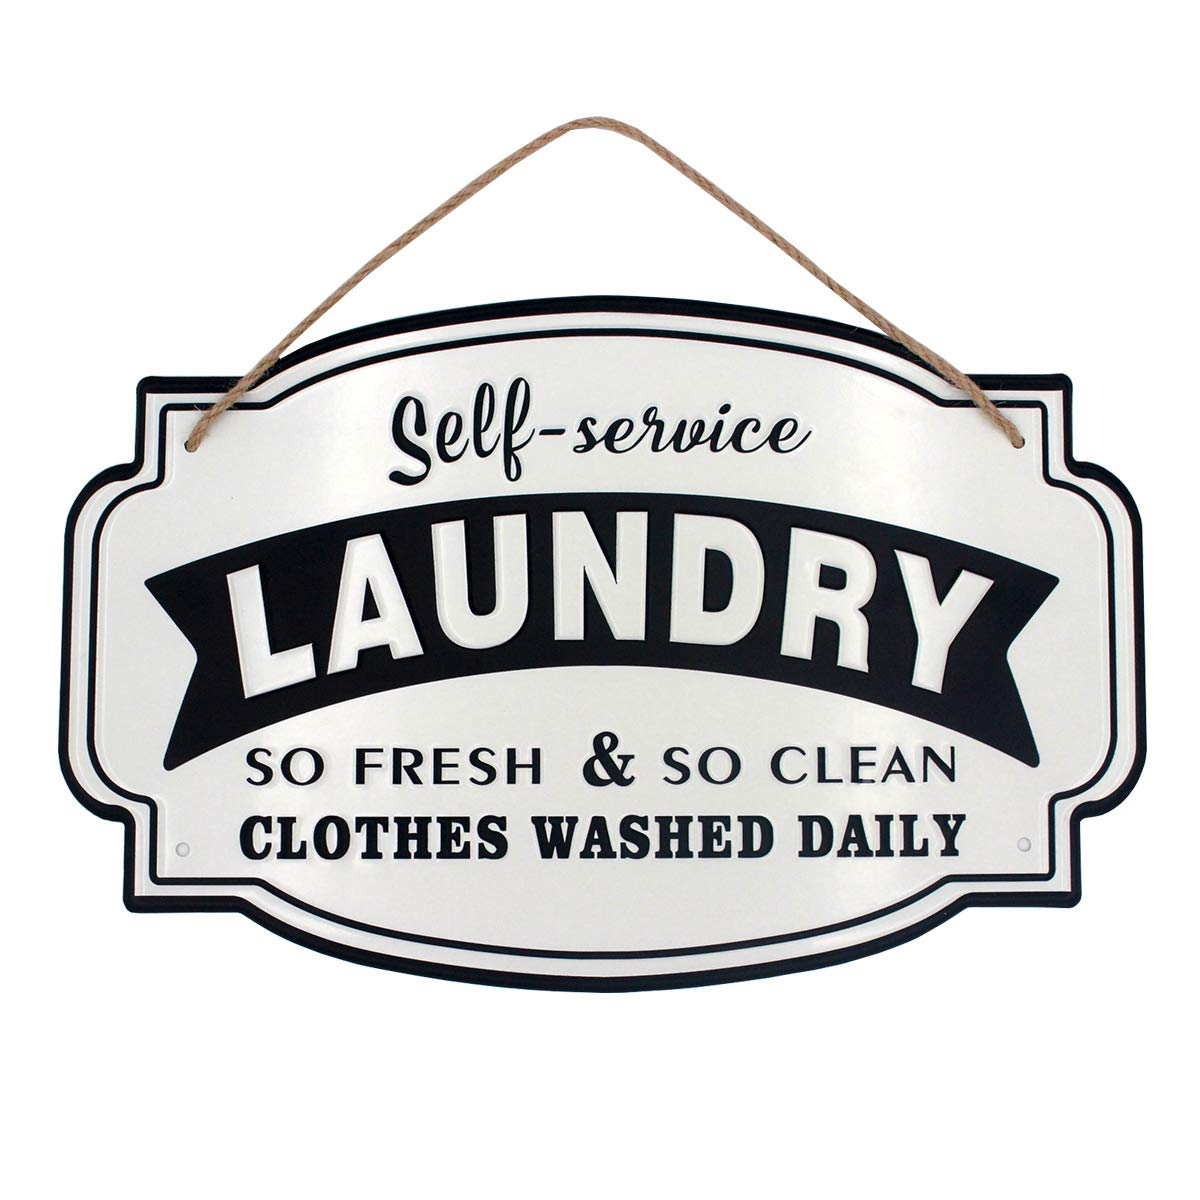 Vintage Metal Laundry Room Wall Decor Sign Hanging with Jute Rope -16x10.2(in)